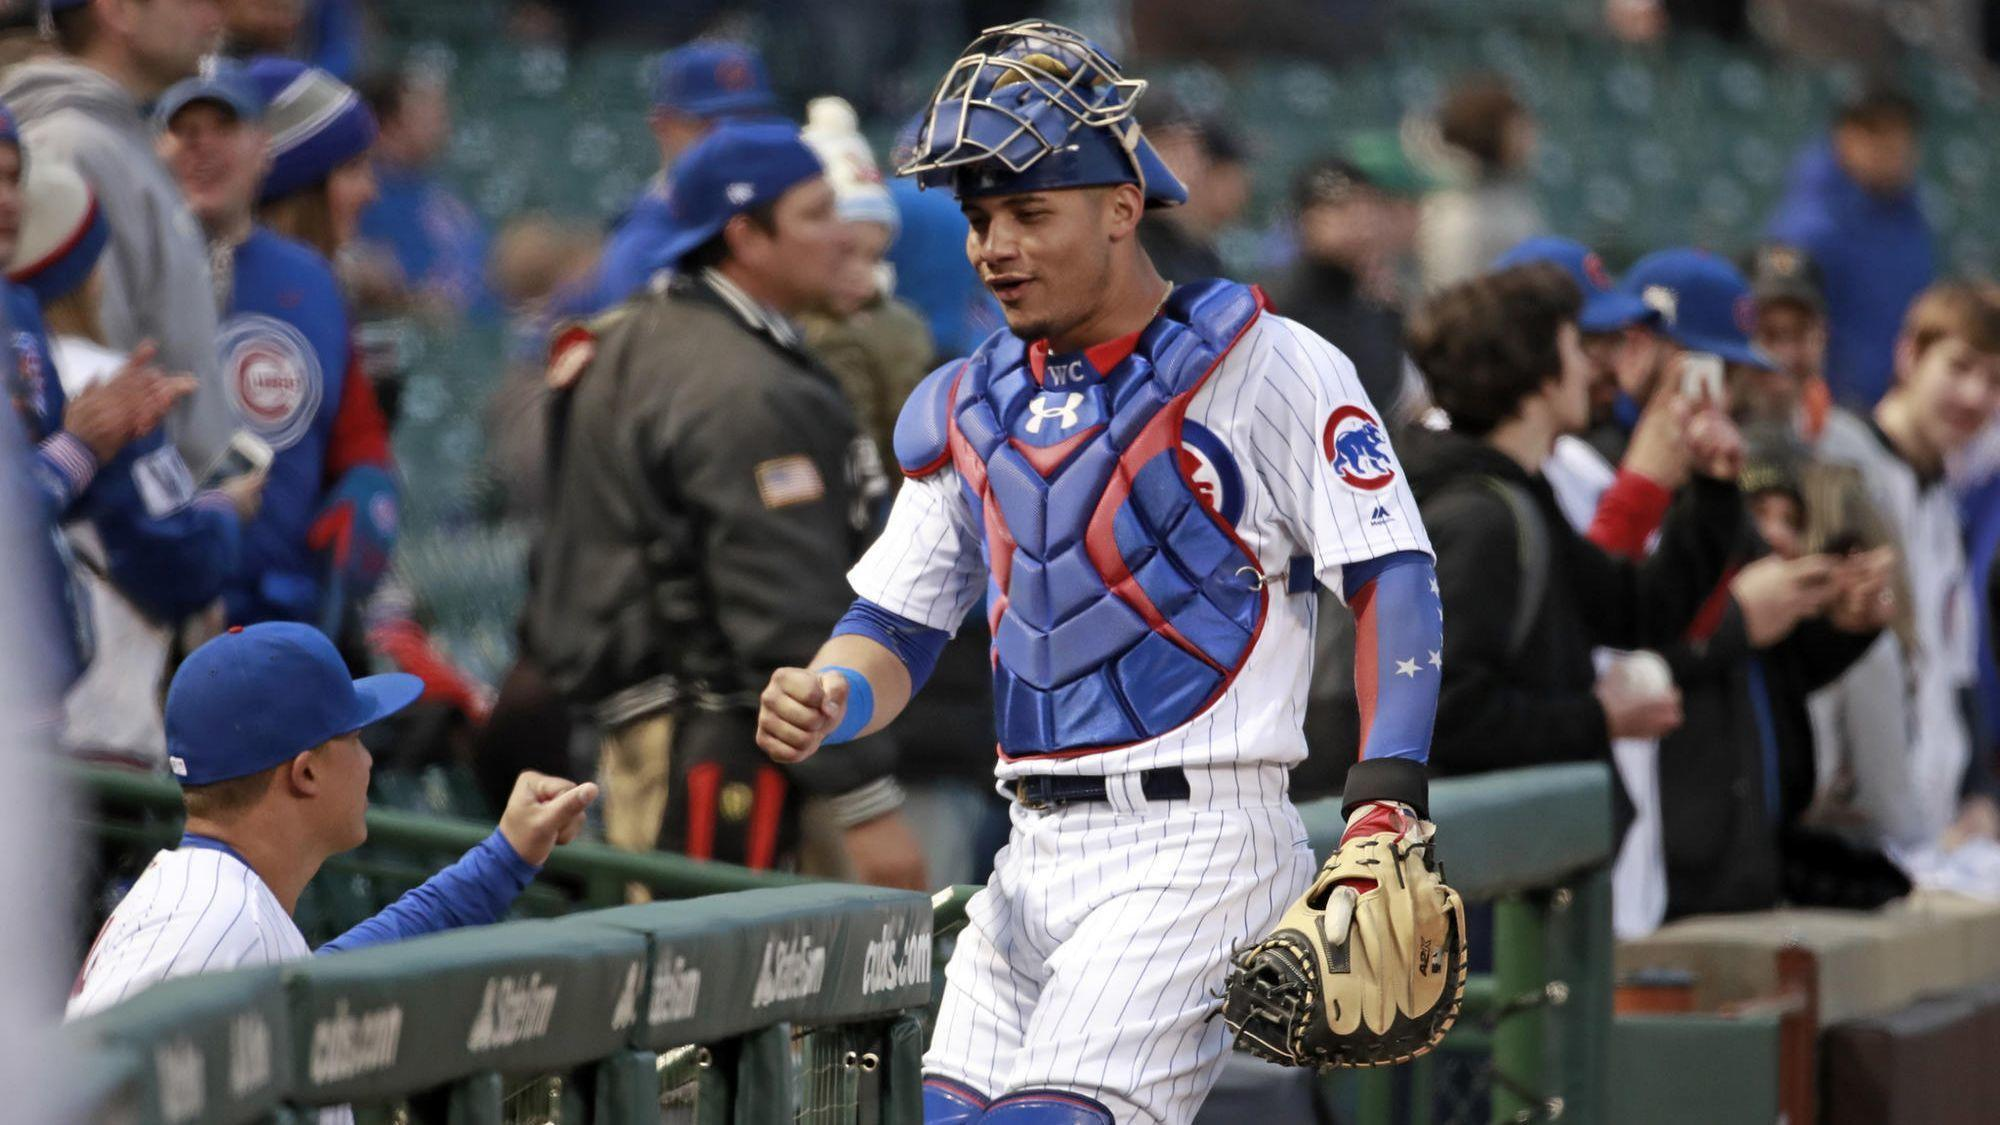 Ct-spt-cubs-willson-contreras-catching-style-notes-20180416